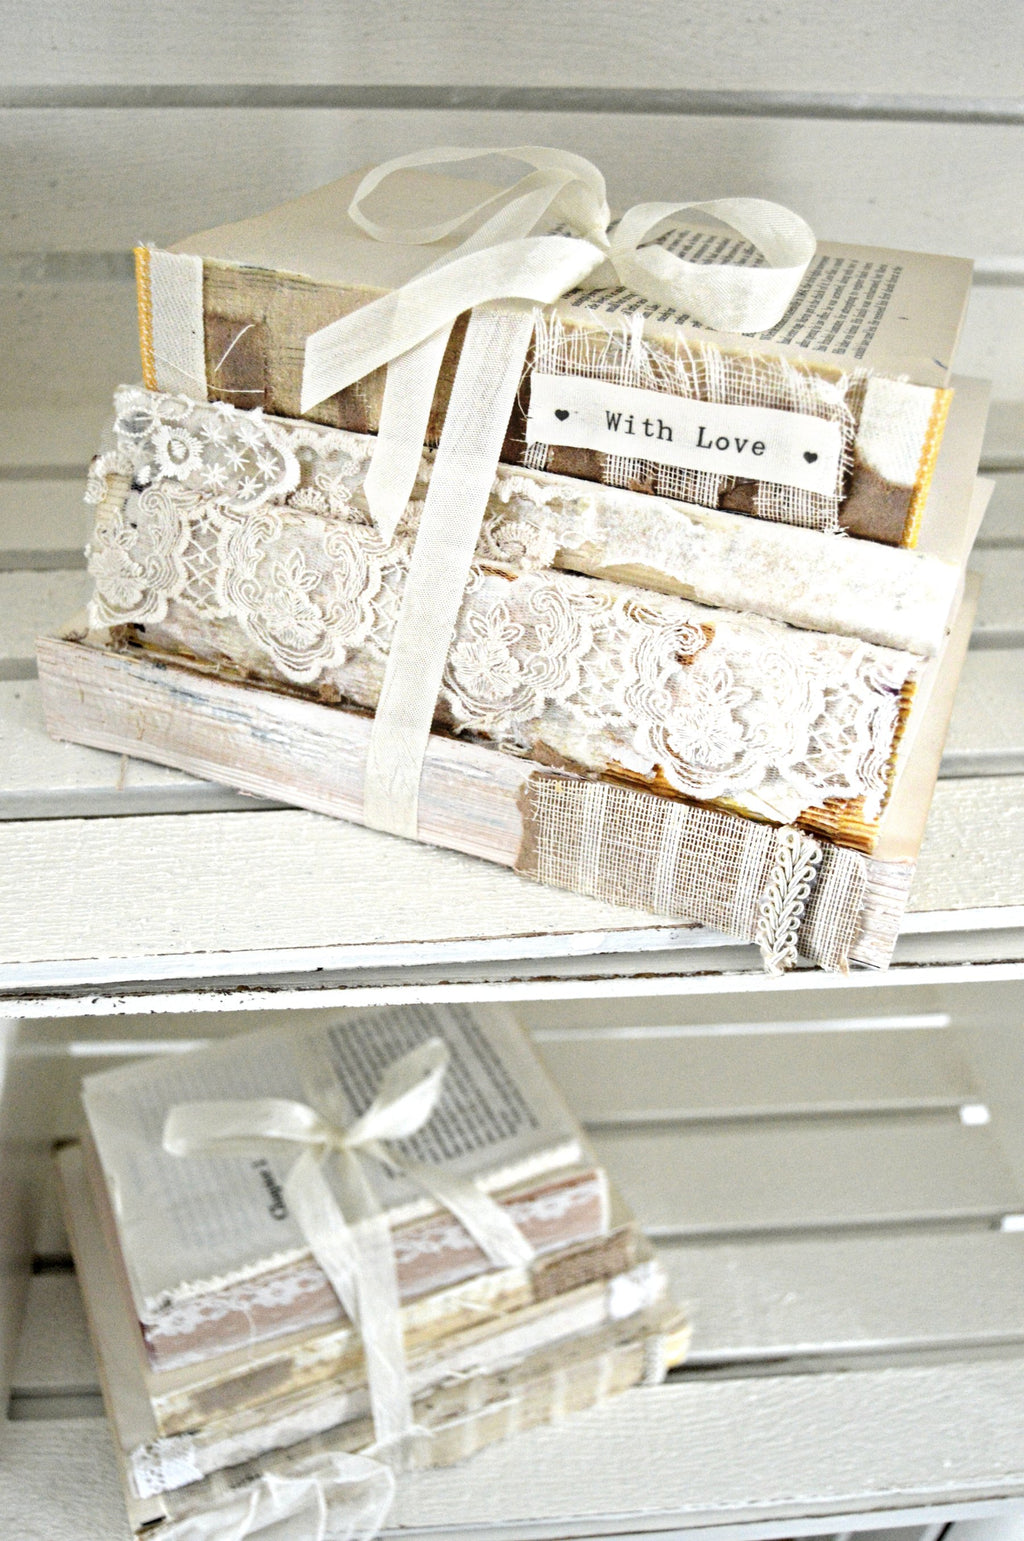 Vintage books bundled together for wedding centerpieces